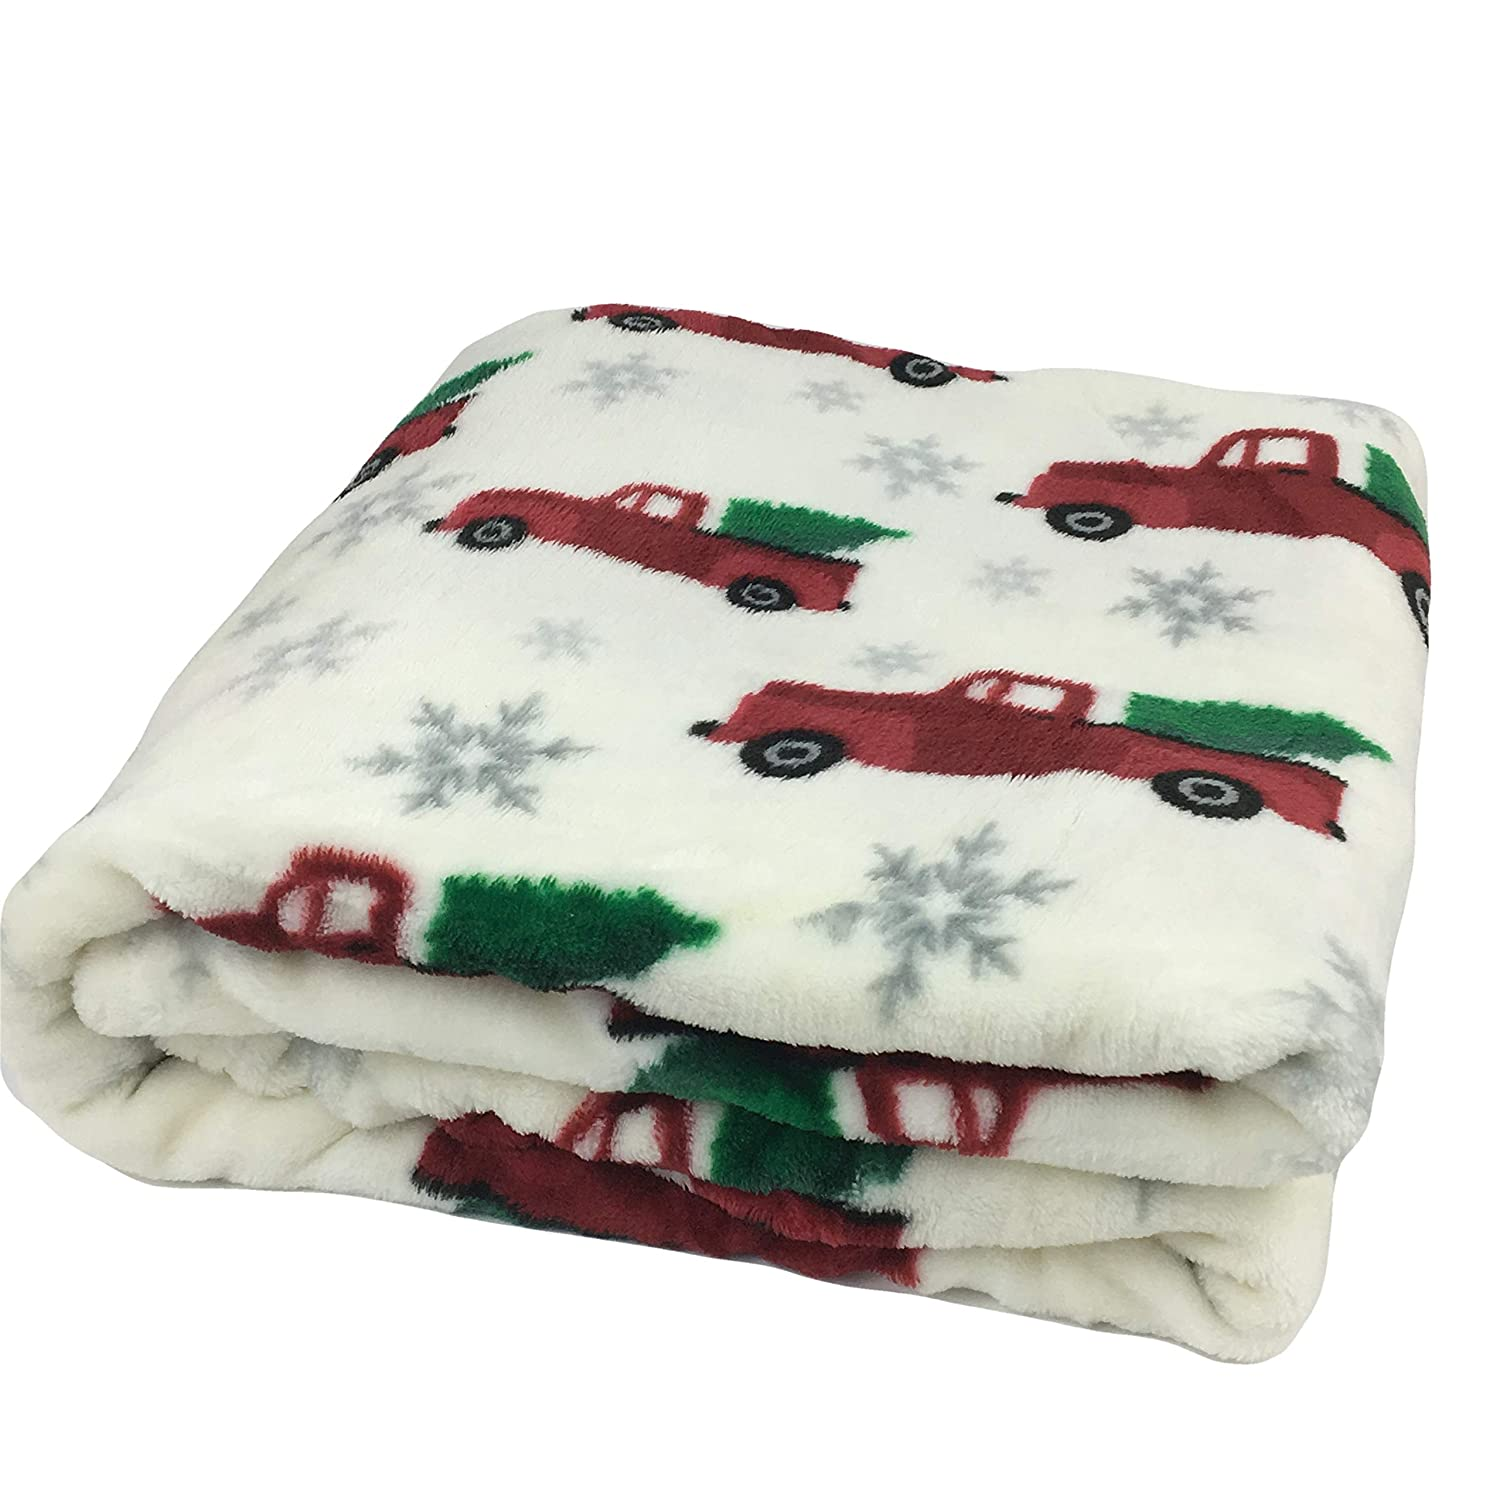 Christmas Velvet Plush Throw Blanket Red Trucks with Trees